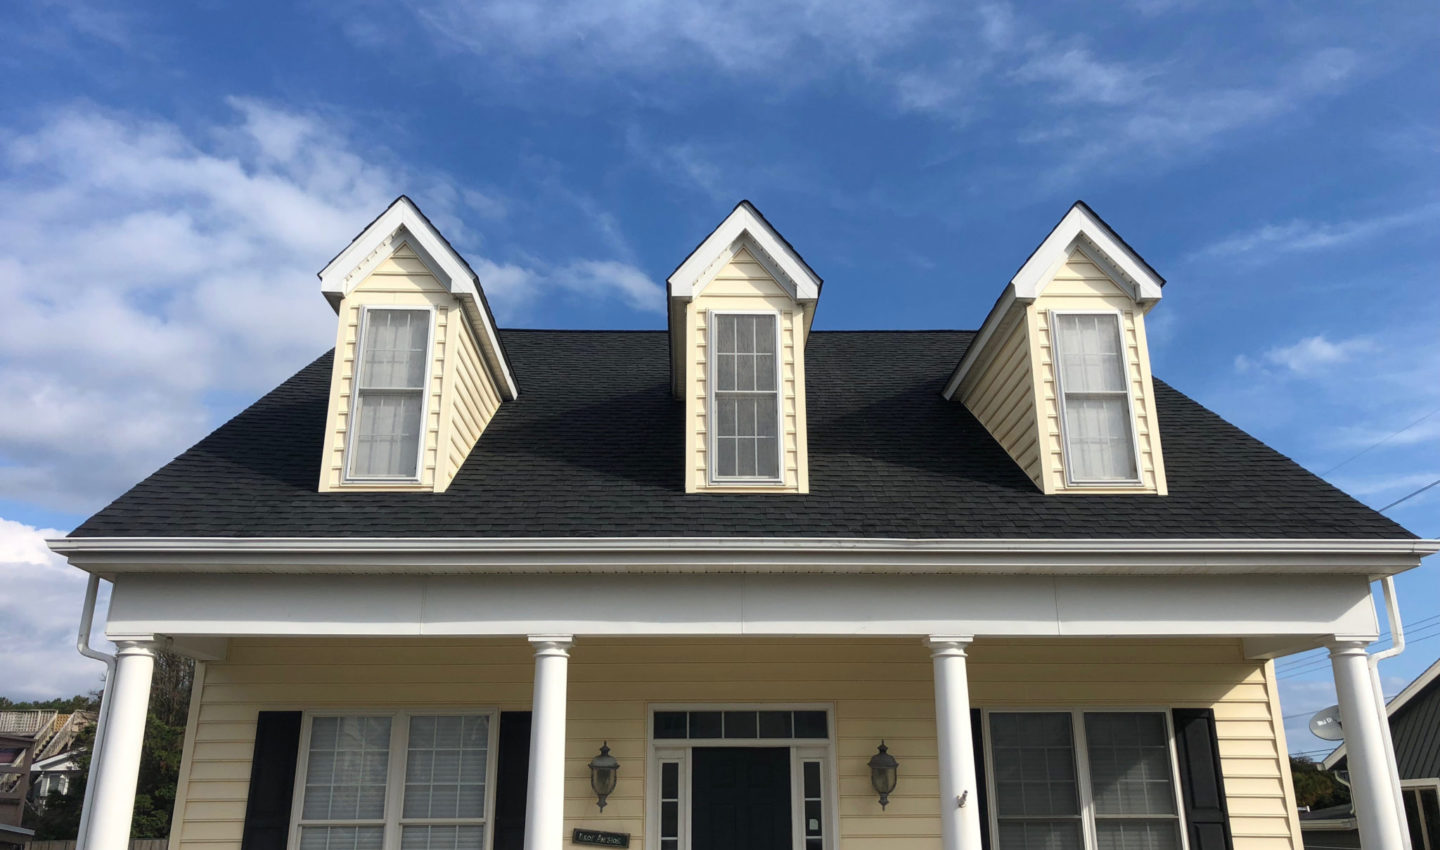 roofing contractors in Easton maryland